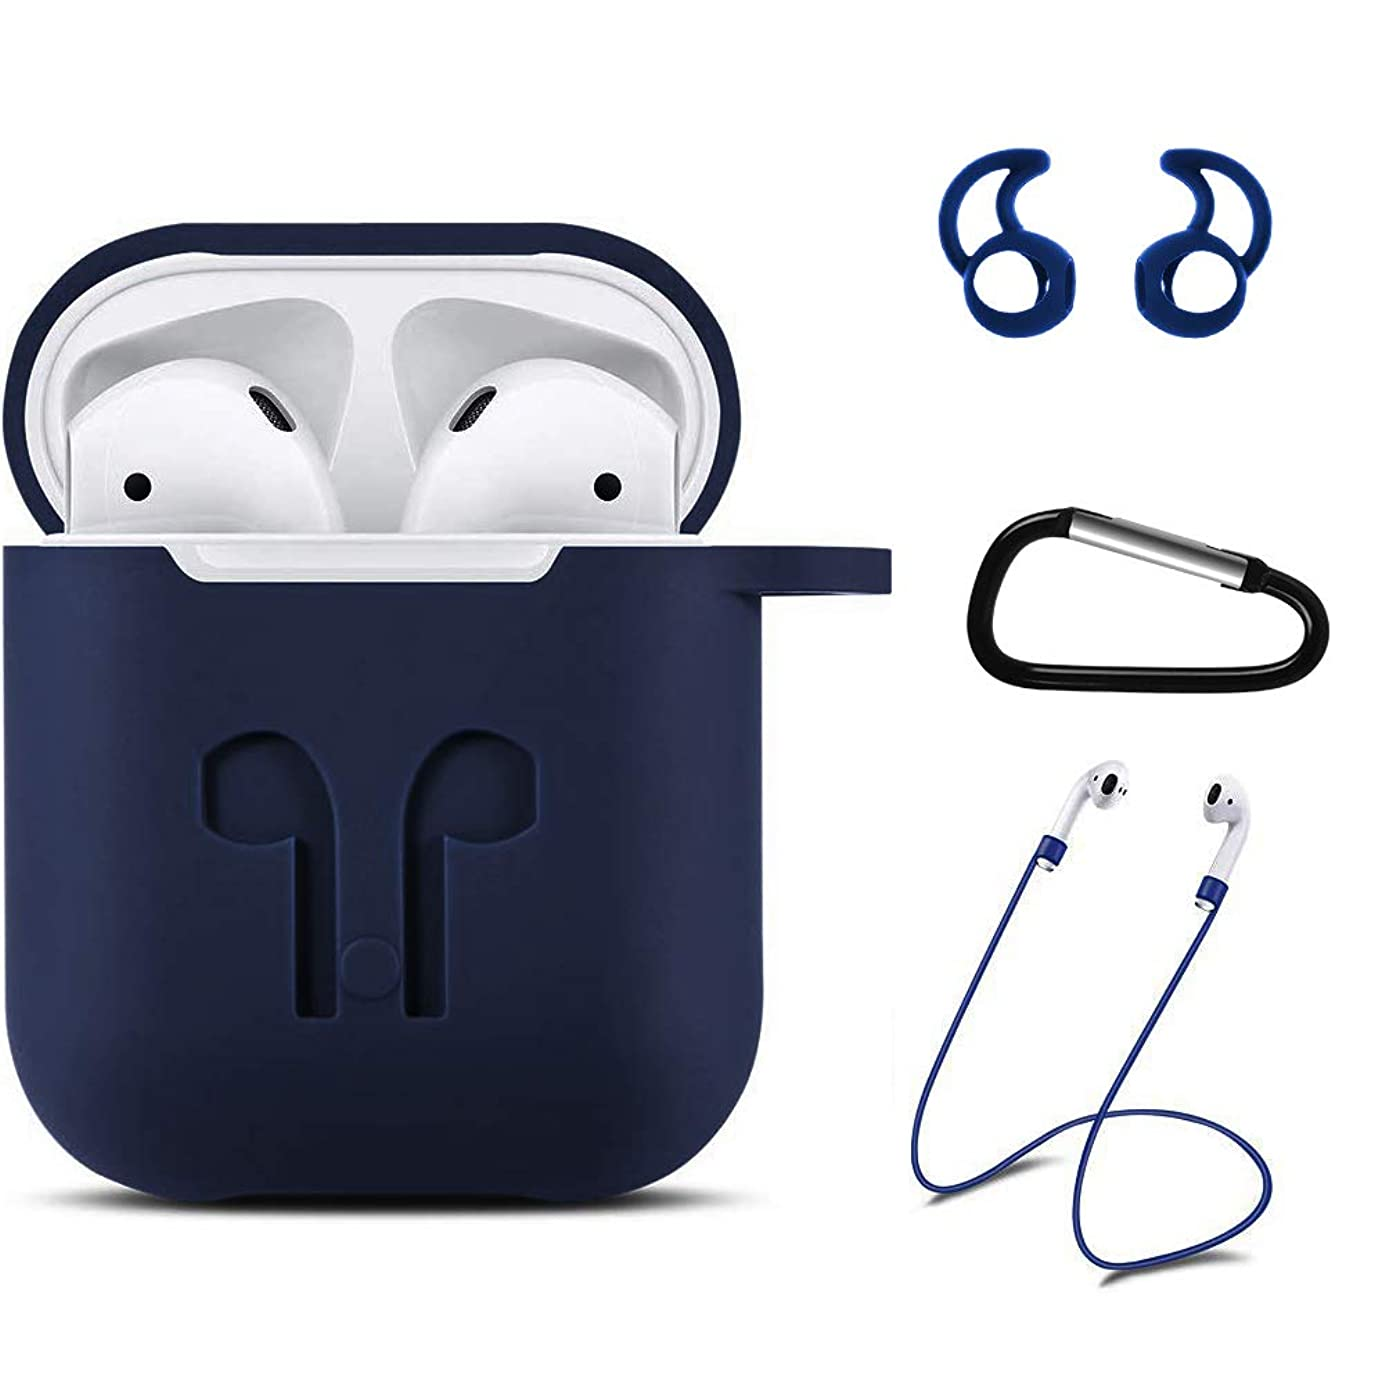 Xawy AirPods Case Airpods Accessories Kits Protective Silicone Cover and Skin Compatible with Airpods Charging Case (Blue)